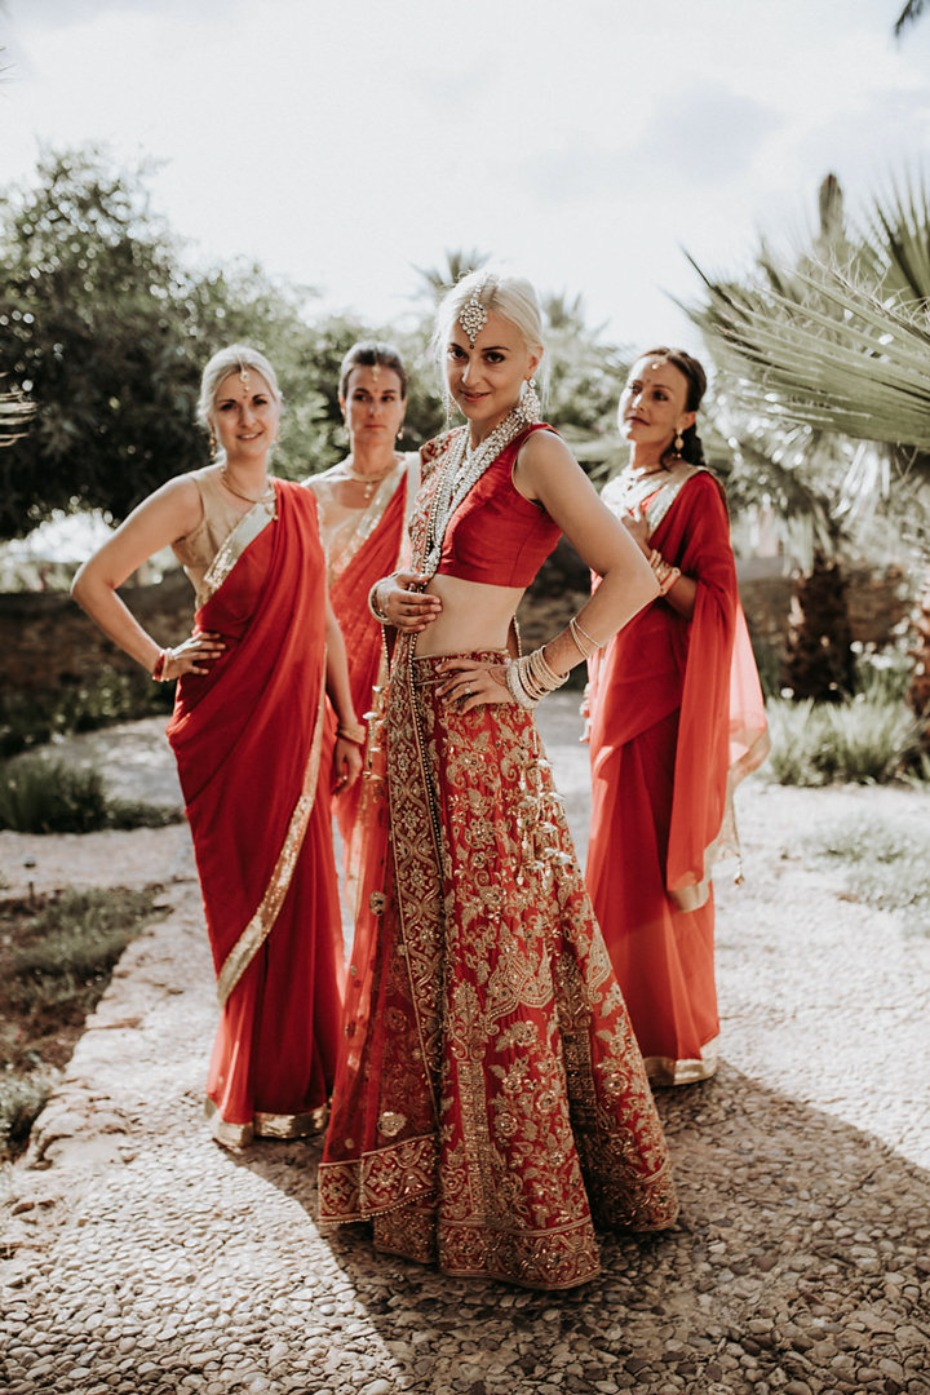 bride and bridesmaids in traditional Indian wedding garb